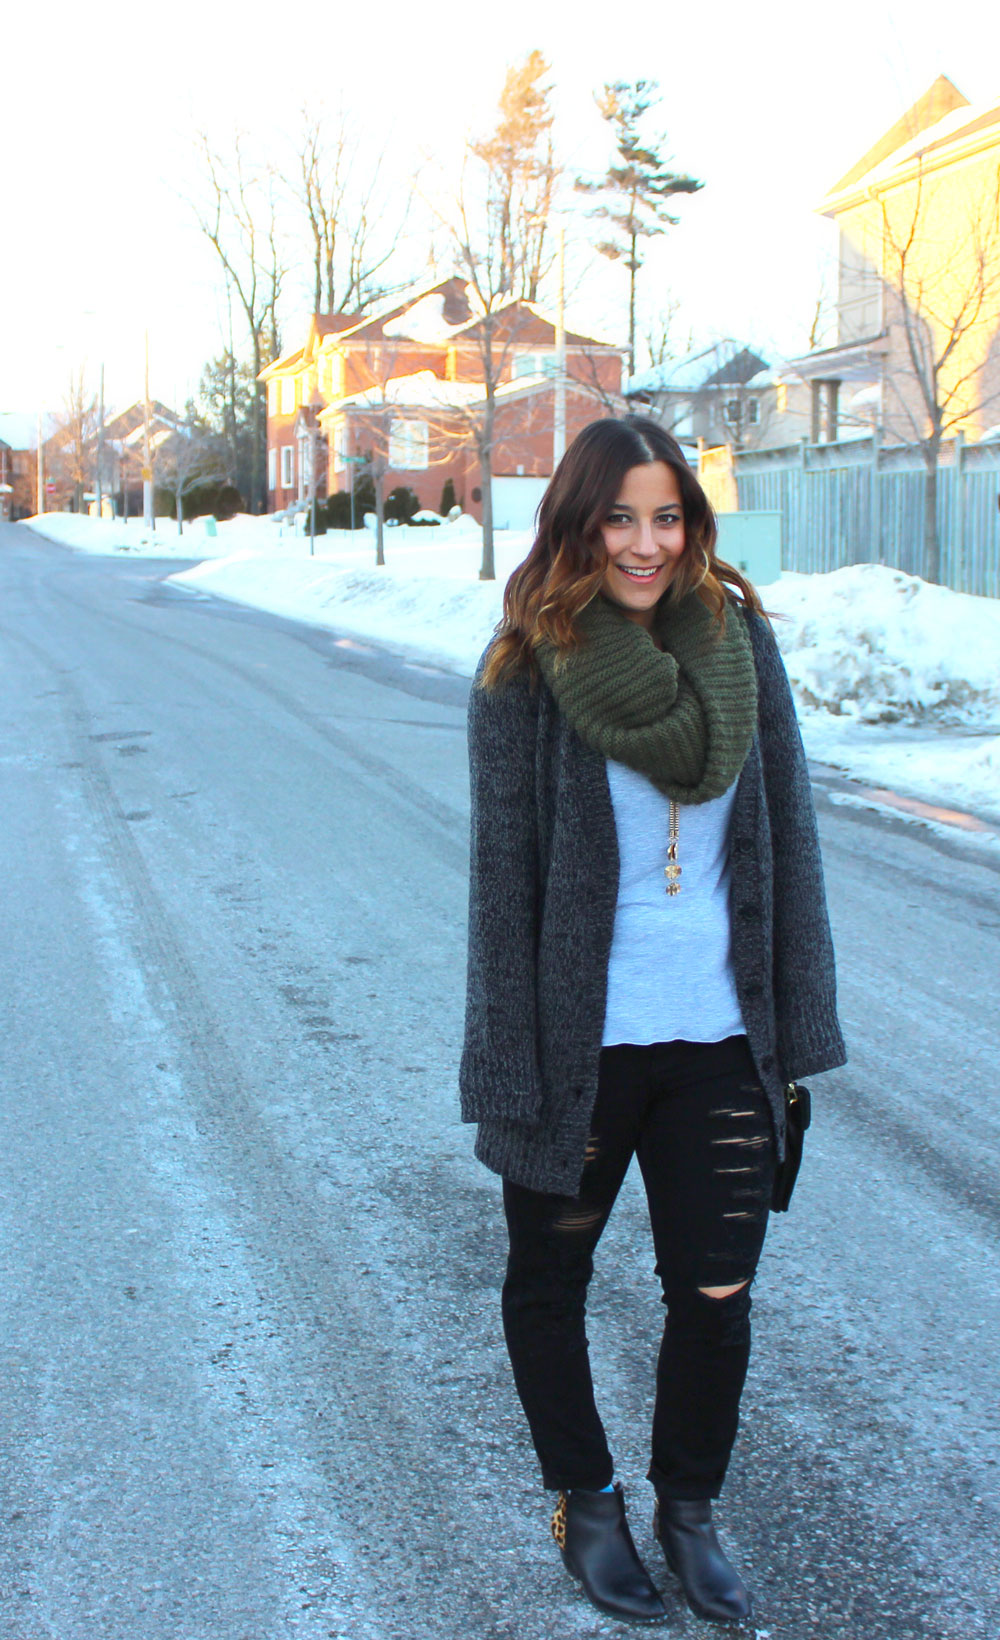 Chunky Cardigan, Infinity Scarf, and Ripped Black Skinny Jeans - Winter Fashion